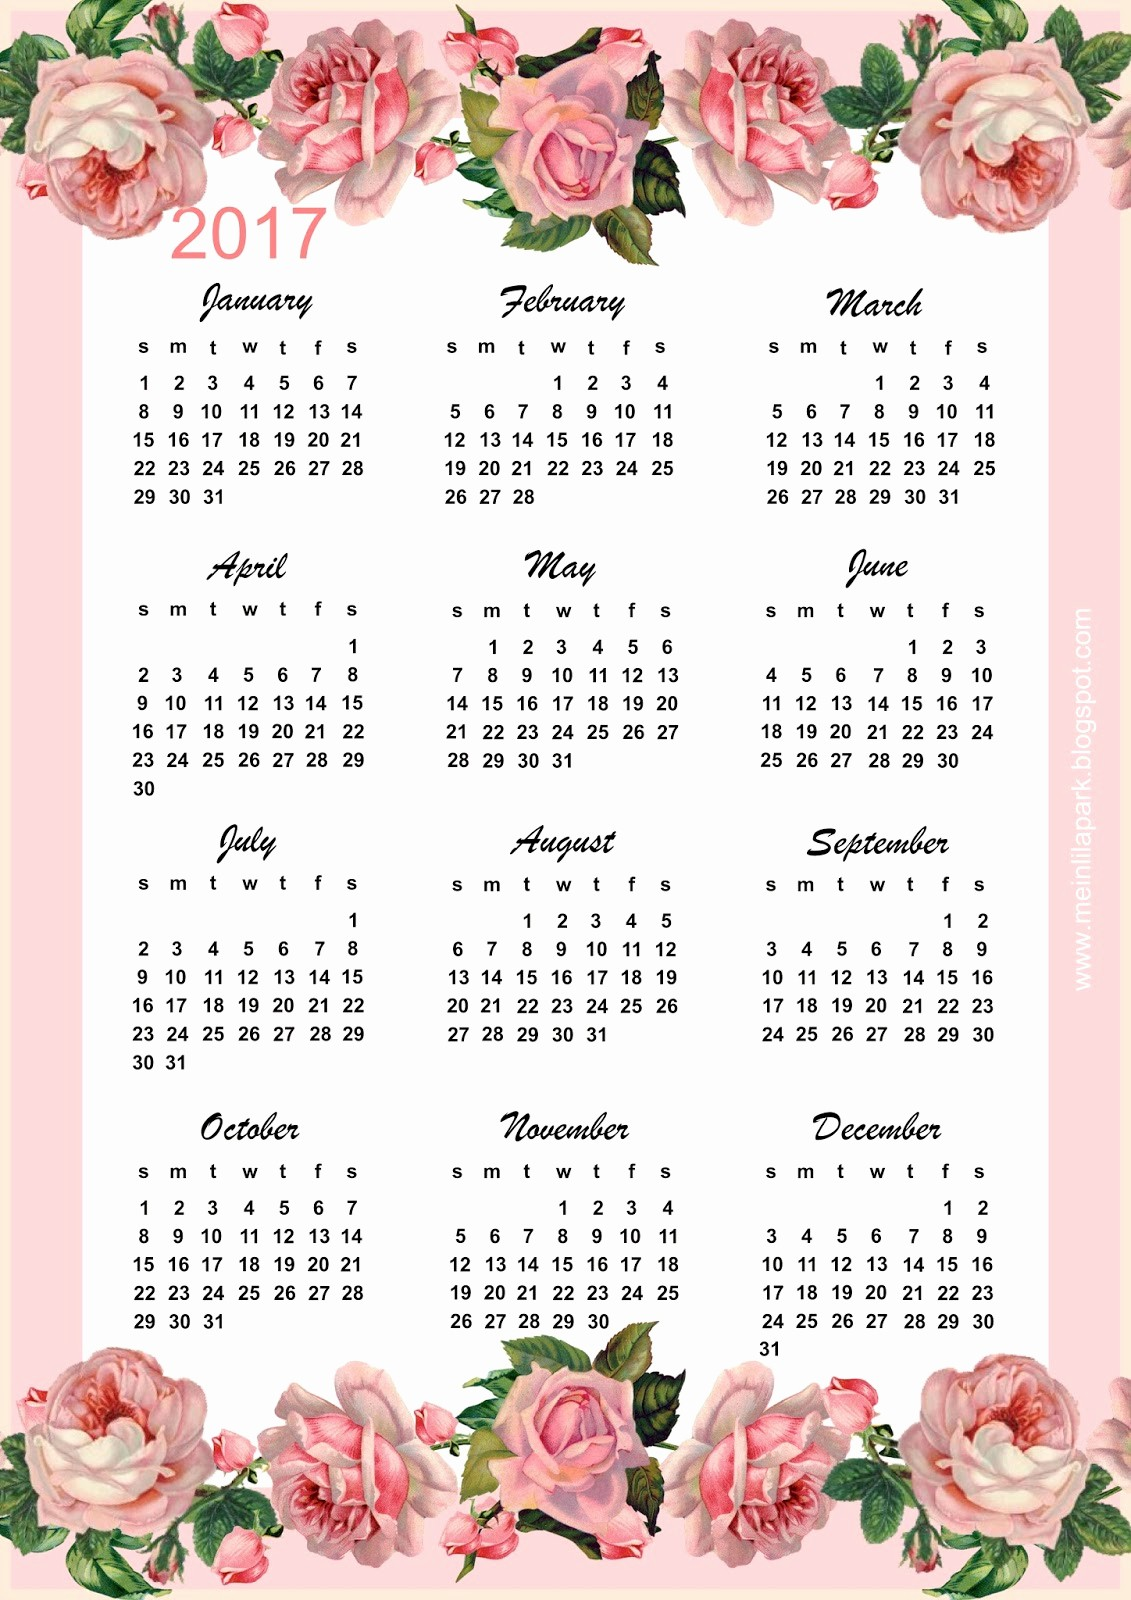 2017 Year Calendar Printable Free Luxury Free Printable 2017 Vintage Rose Calendar Year at A